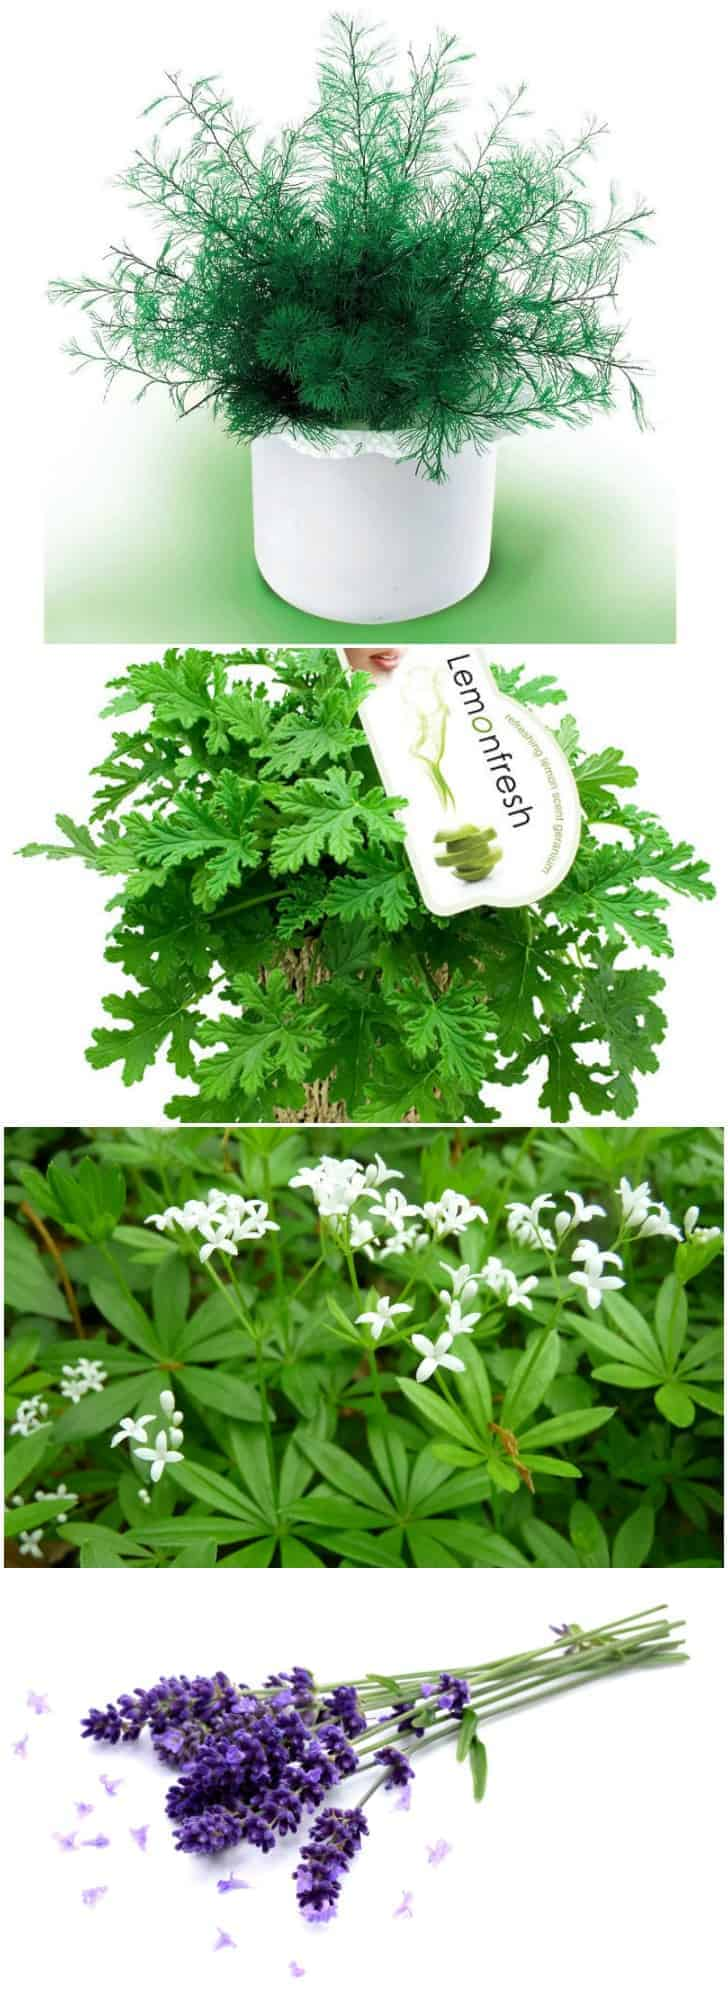 12 natural mosquito repellent plants 1001 gardens - Natural insect repellent for gardens ...